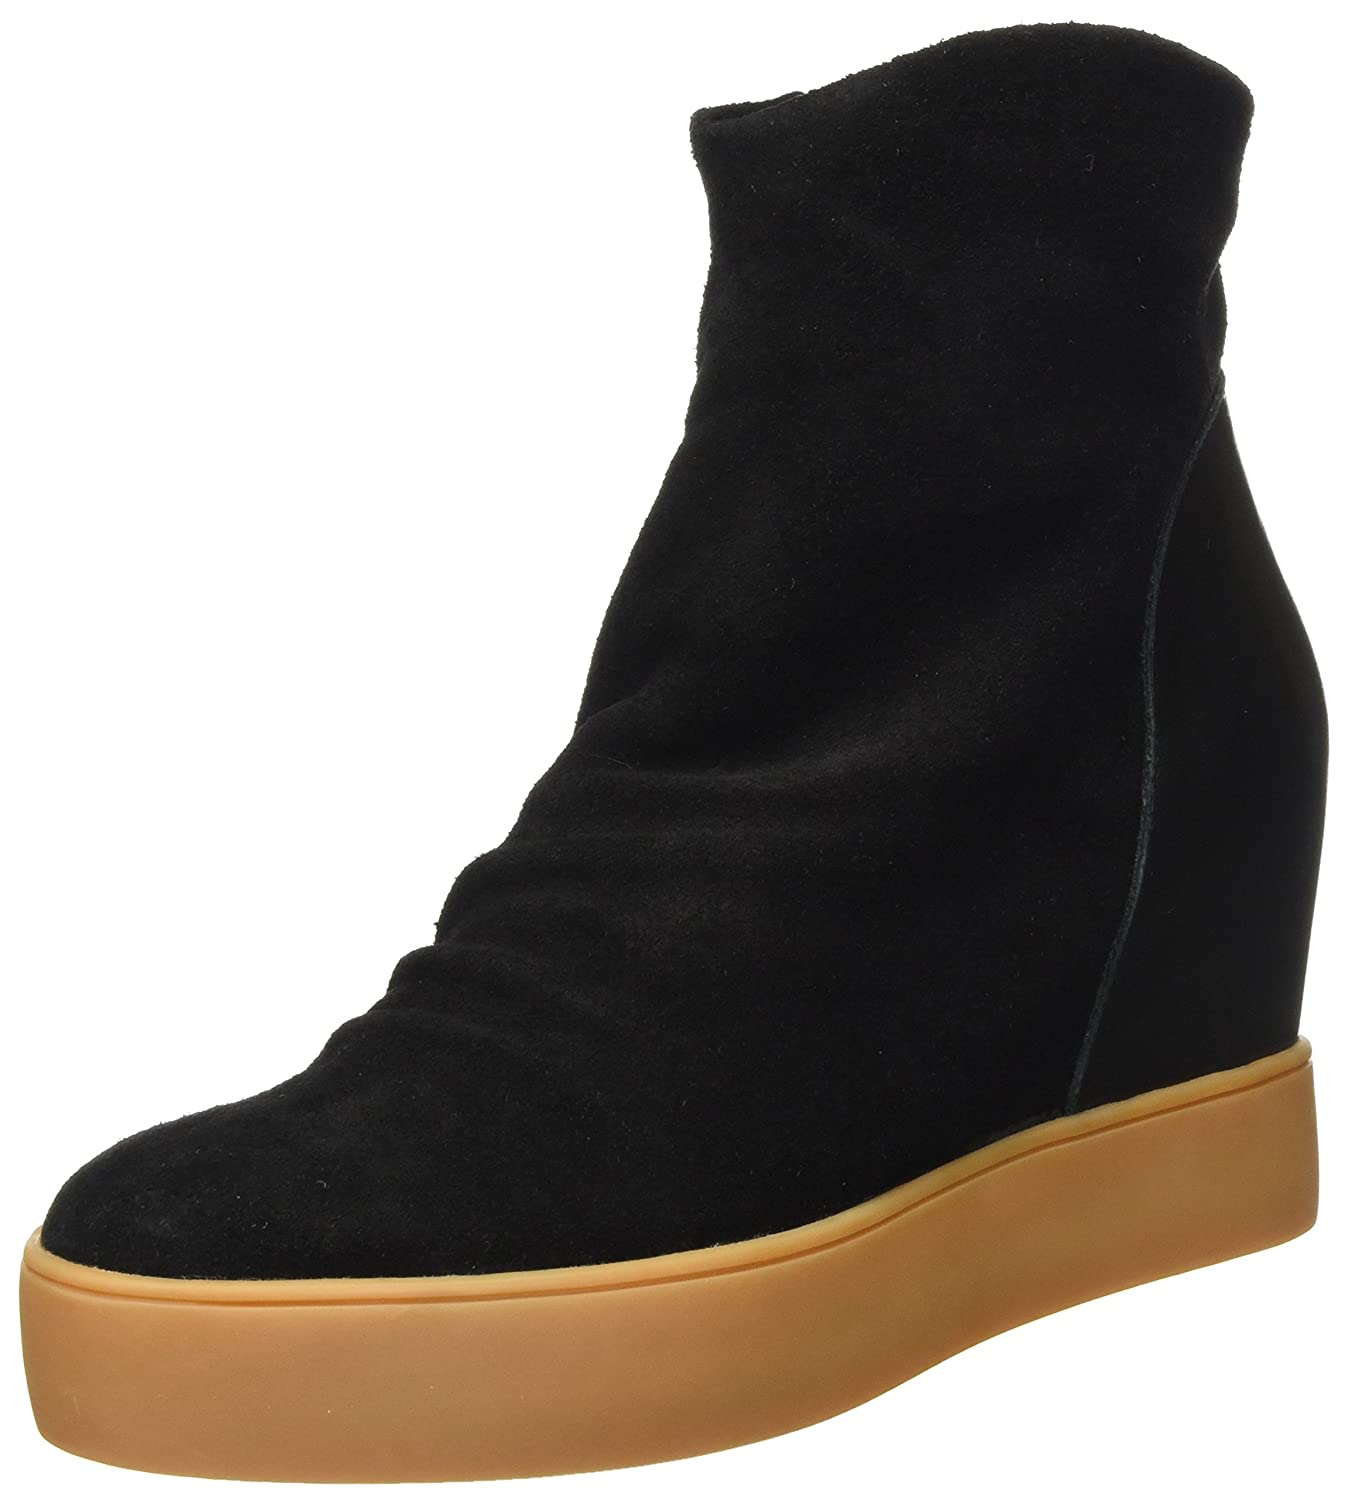 Shoe The Bear Trish S, Botas para Mujer Negro (Black 110)